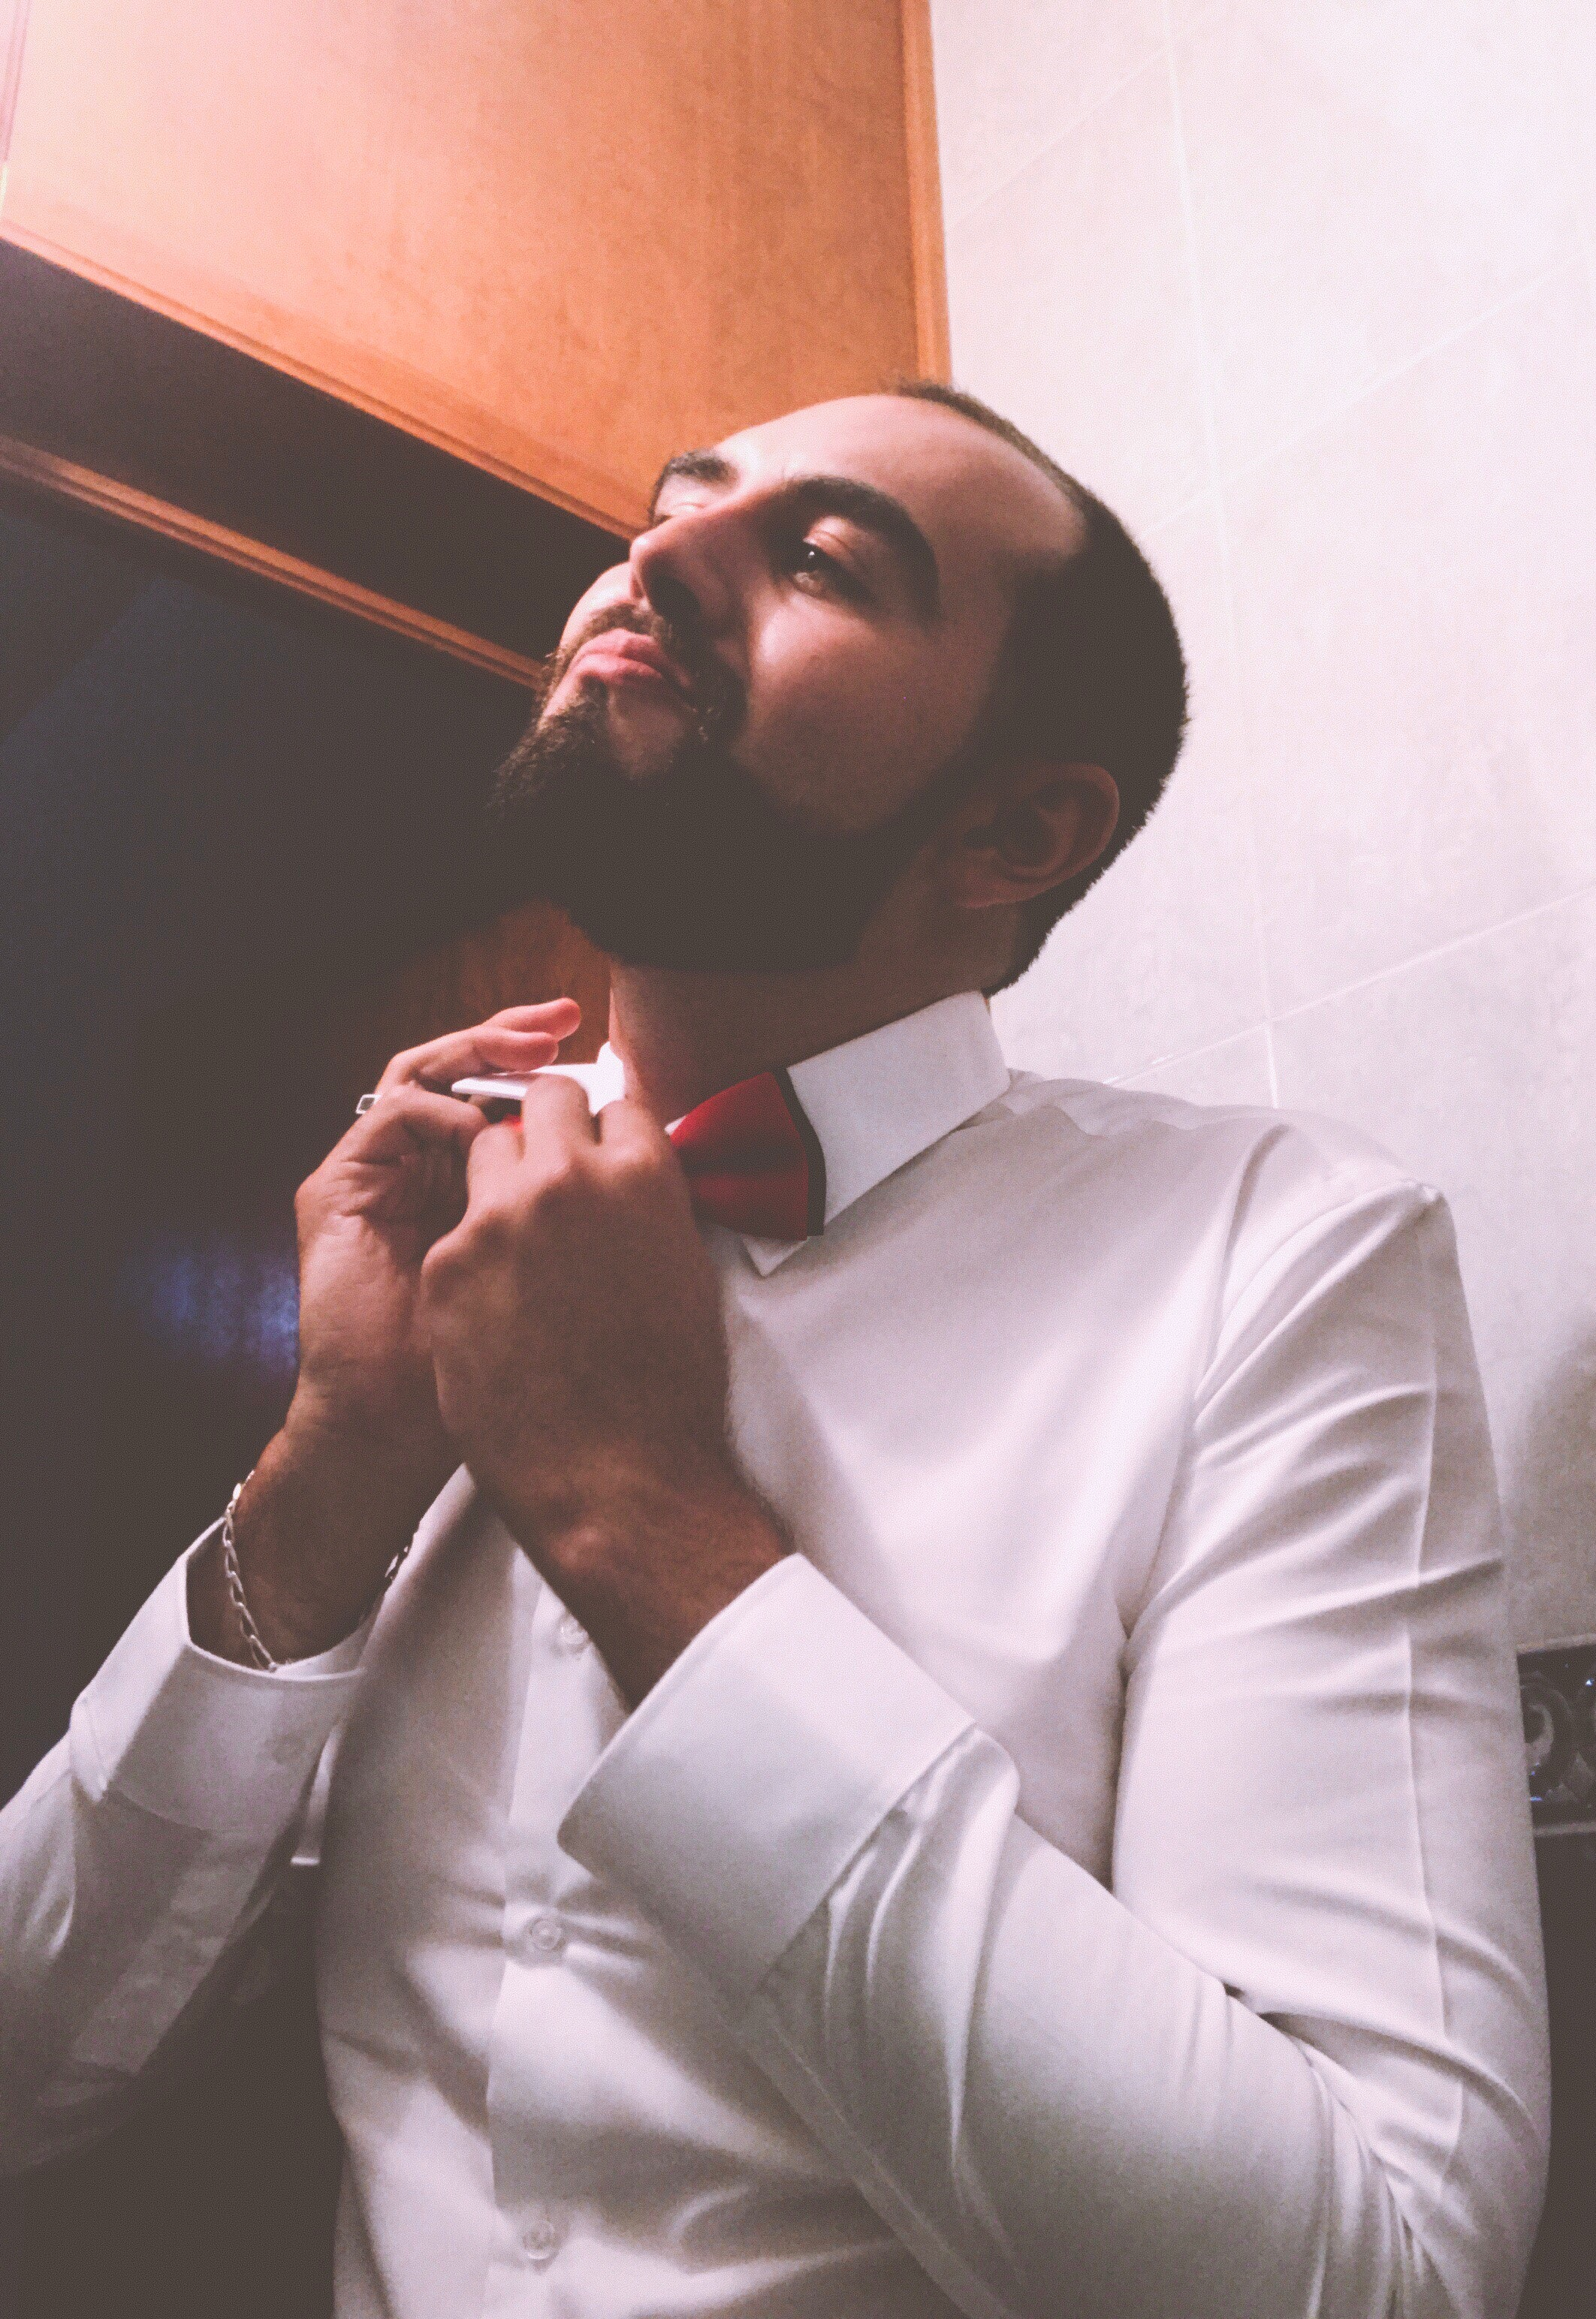 Man in White Dress Shirt Tying a Red Bow Tie, Adult, Guy, Pose, Photoshoot, HQ Photo